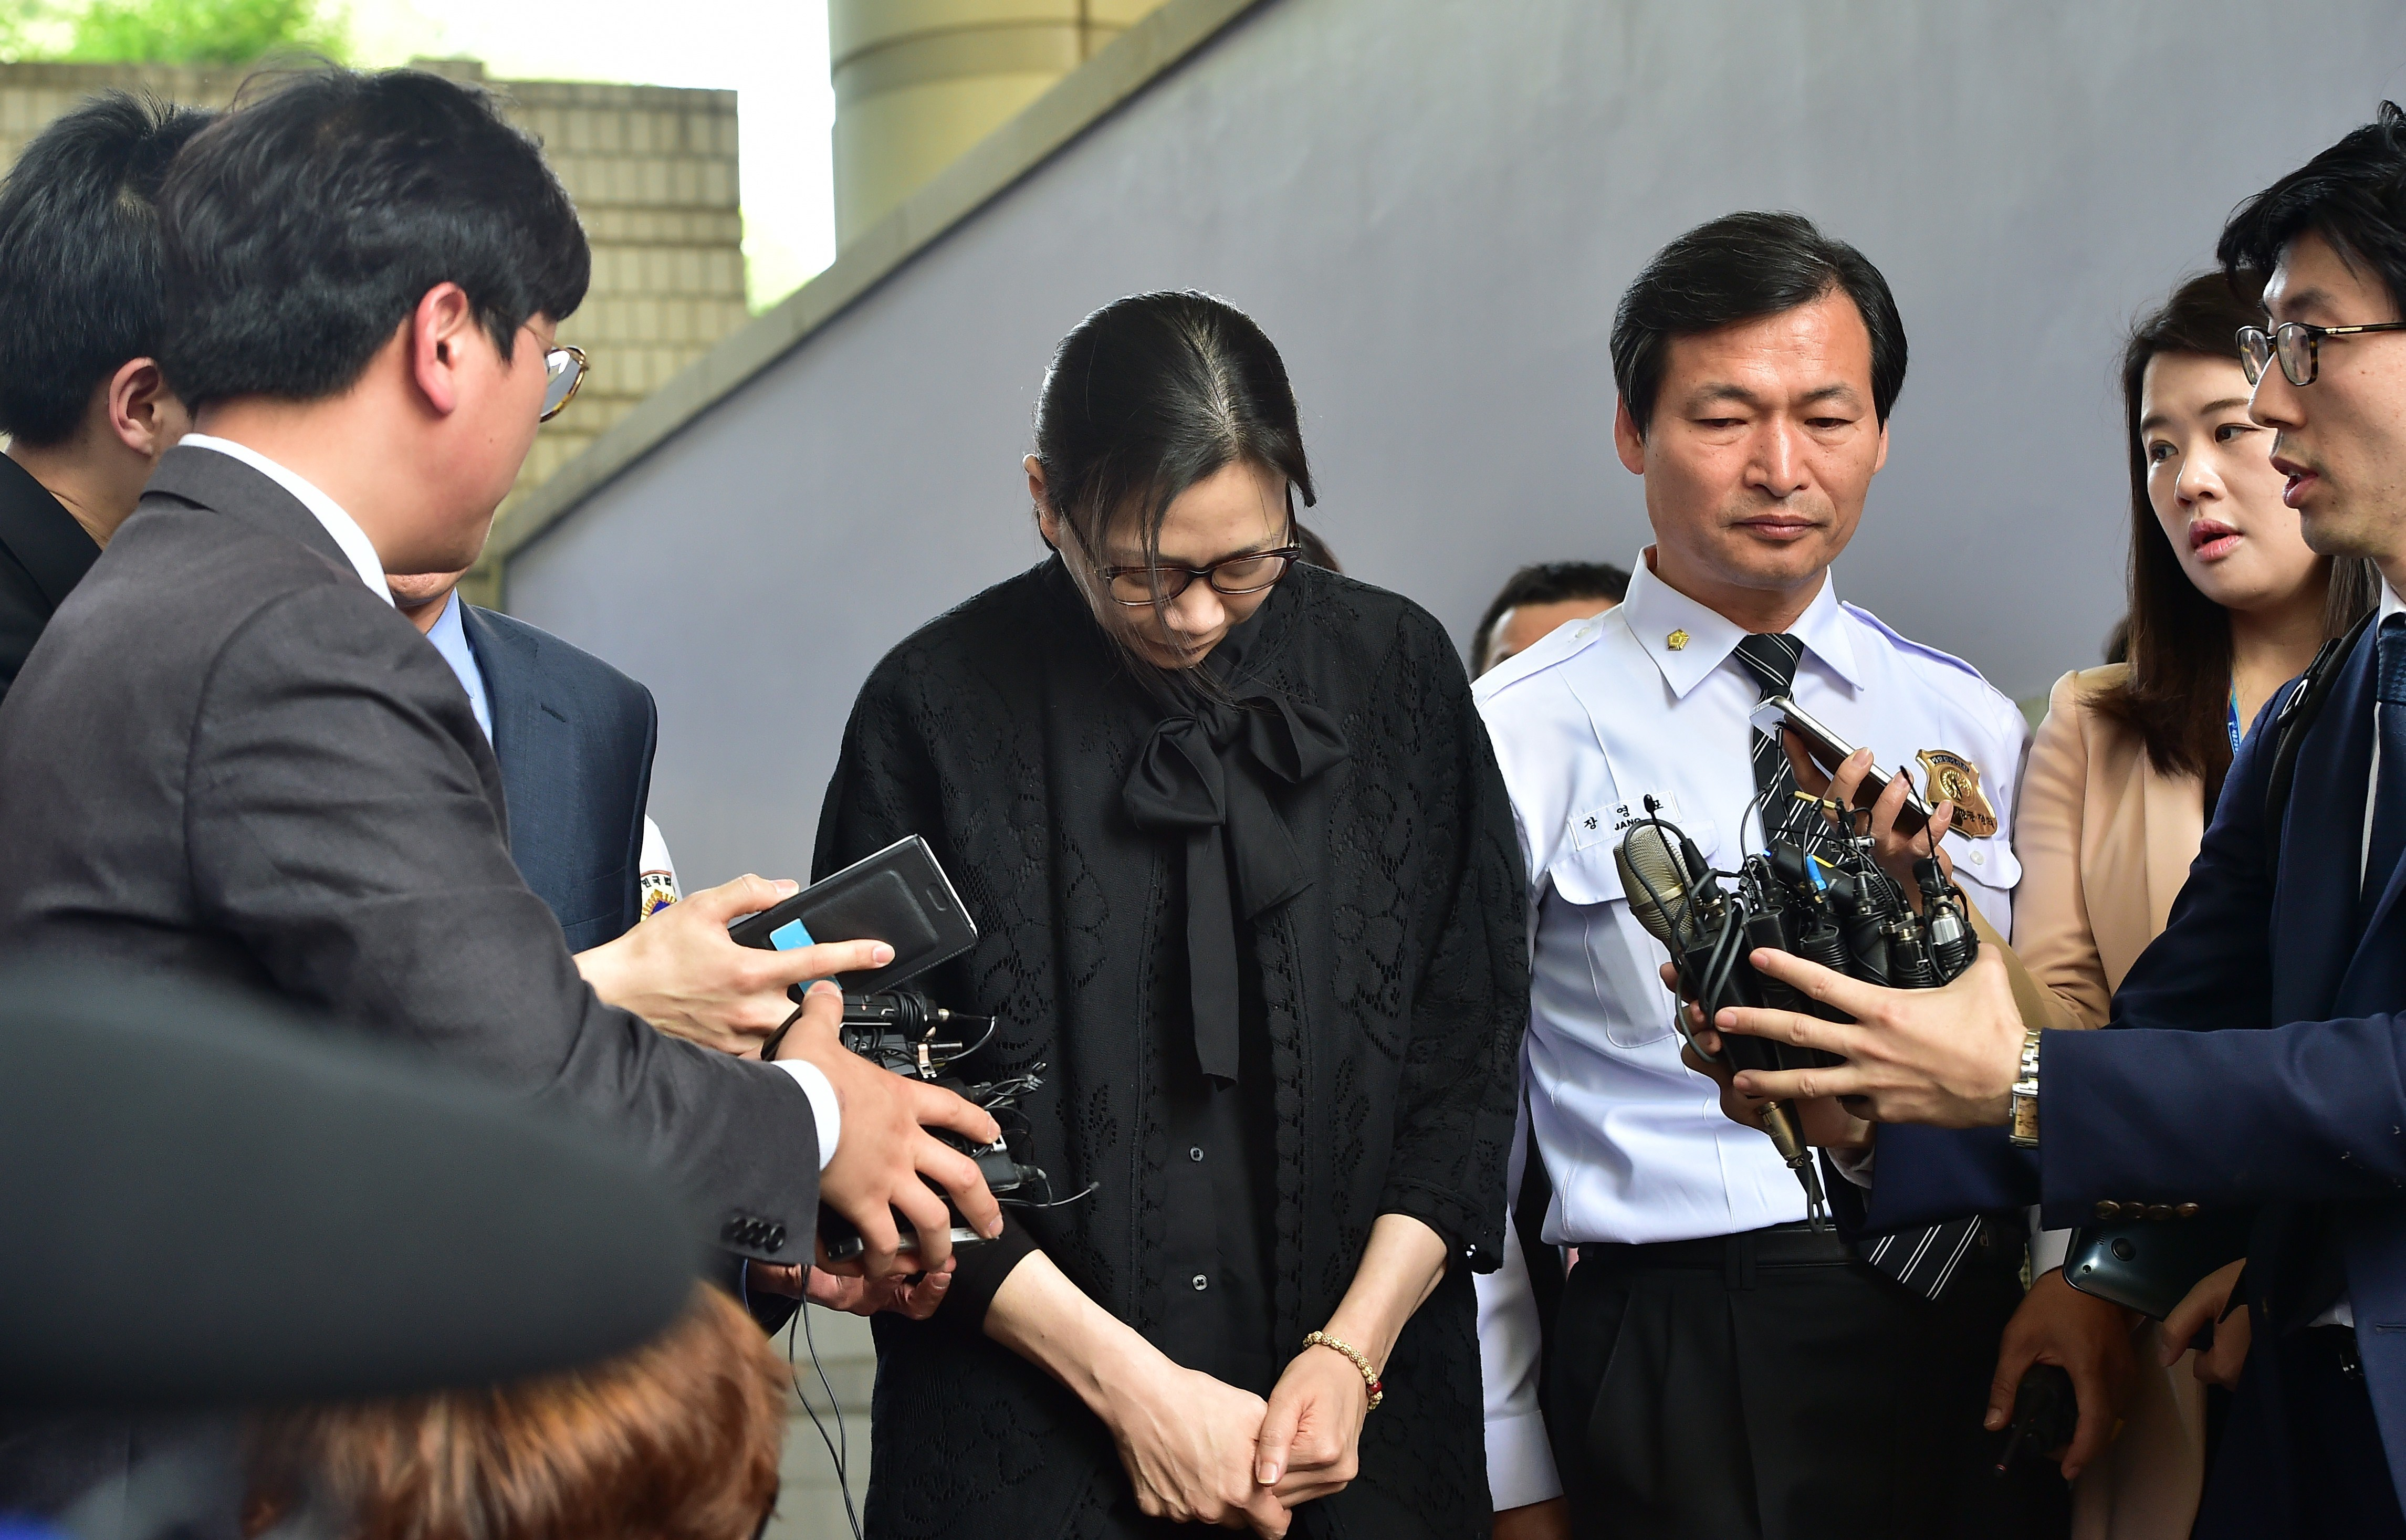 Former Korean Air executive Cho Hyun-Ah (Heather Cho) is surrounded by journalists after she received a suspended jail sentence and was freed by a Seoul appeals court on May 22, 2015.